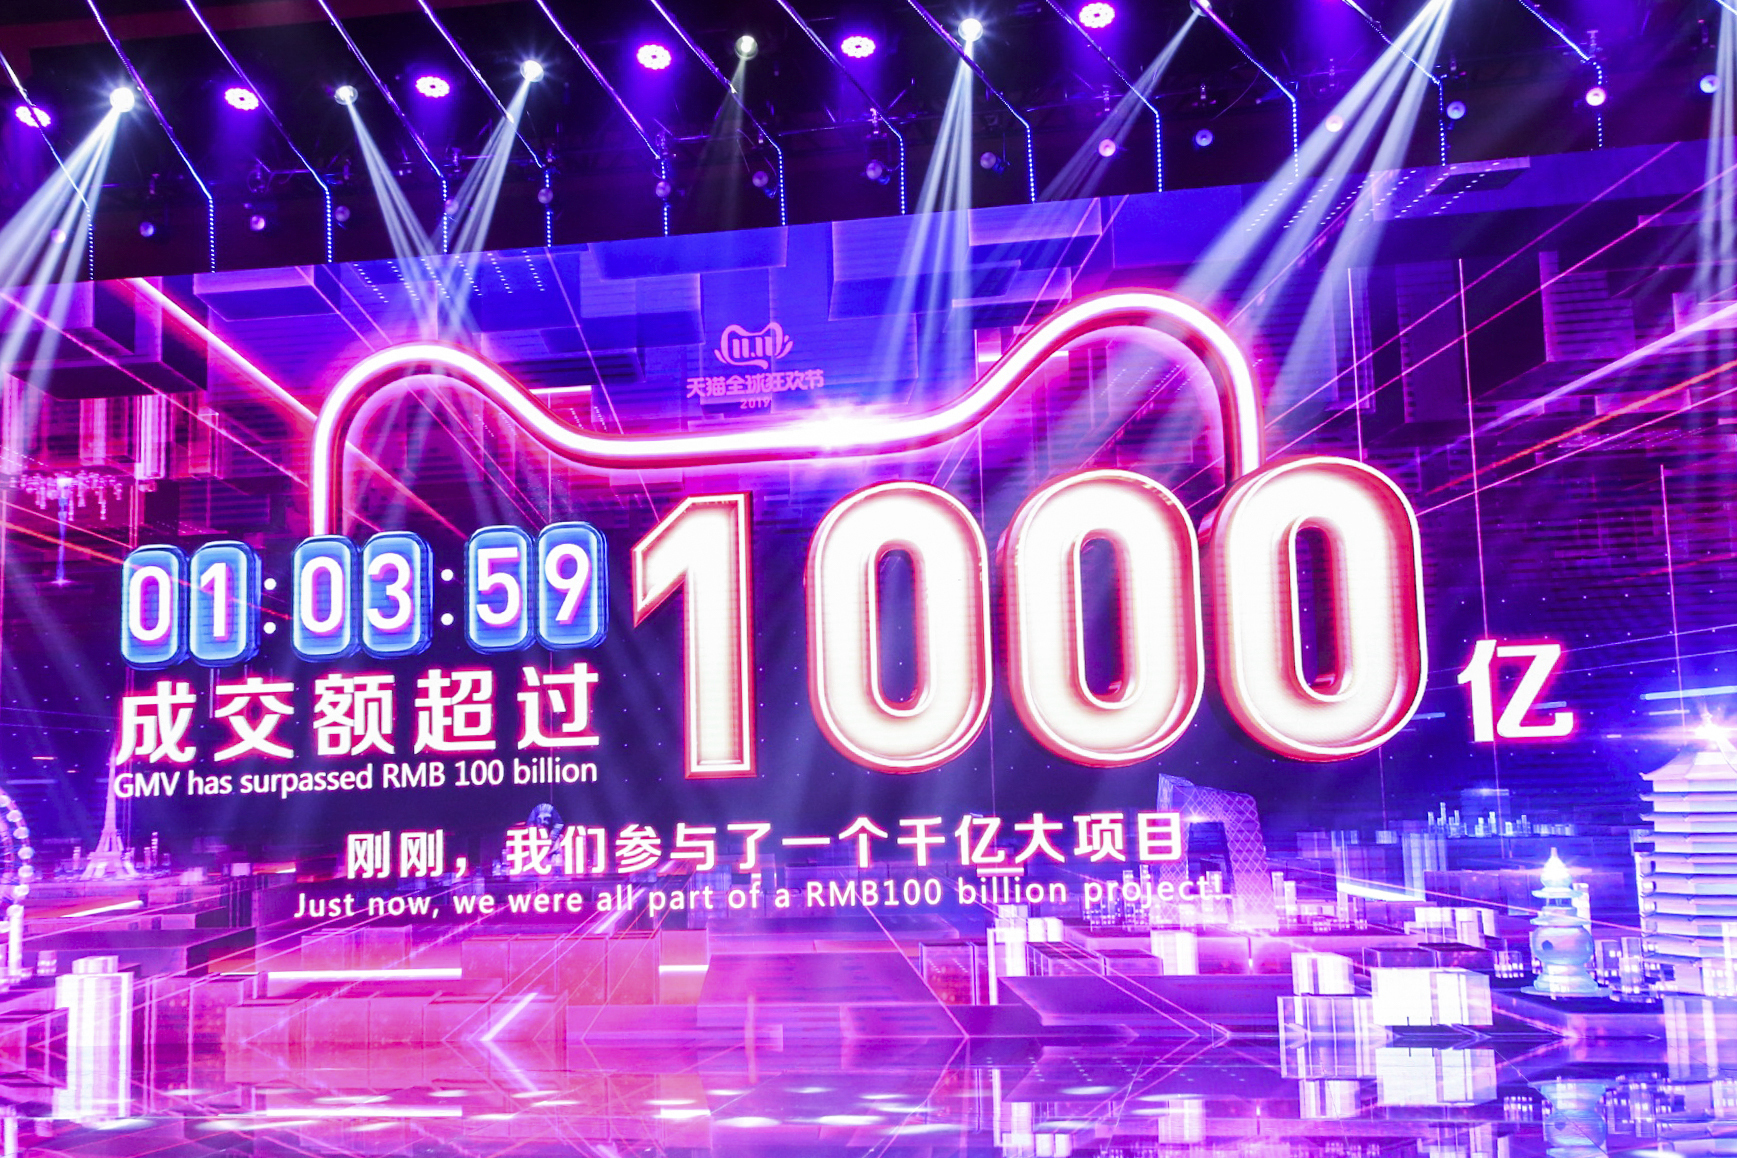 A big screen shows the online sales for e-commerce giant Alibaba surpassed RMB 100 billion or US14 billion at 01:03:59 after the Nov. 11 Tmall Shopping Festival started midnight in Shanghai, China on Nov. 11, 2019.